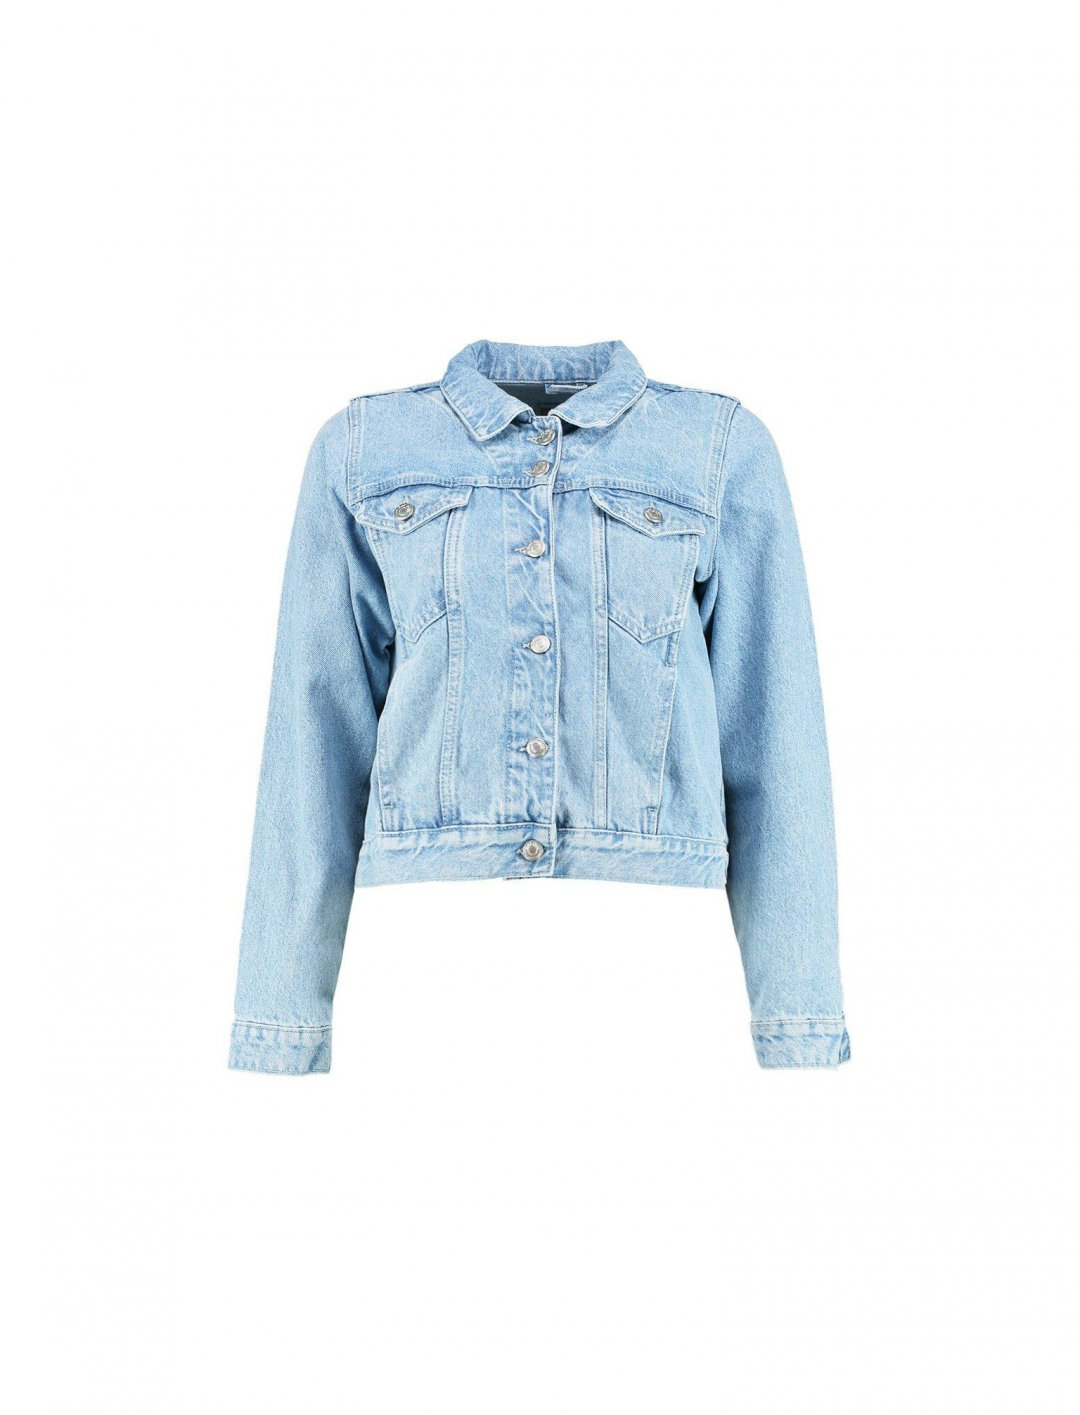 "Rachel's Denim Jacket {""id"":5,""product_section_id"":1,""name"":""Clothing"",""order"":5}"